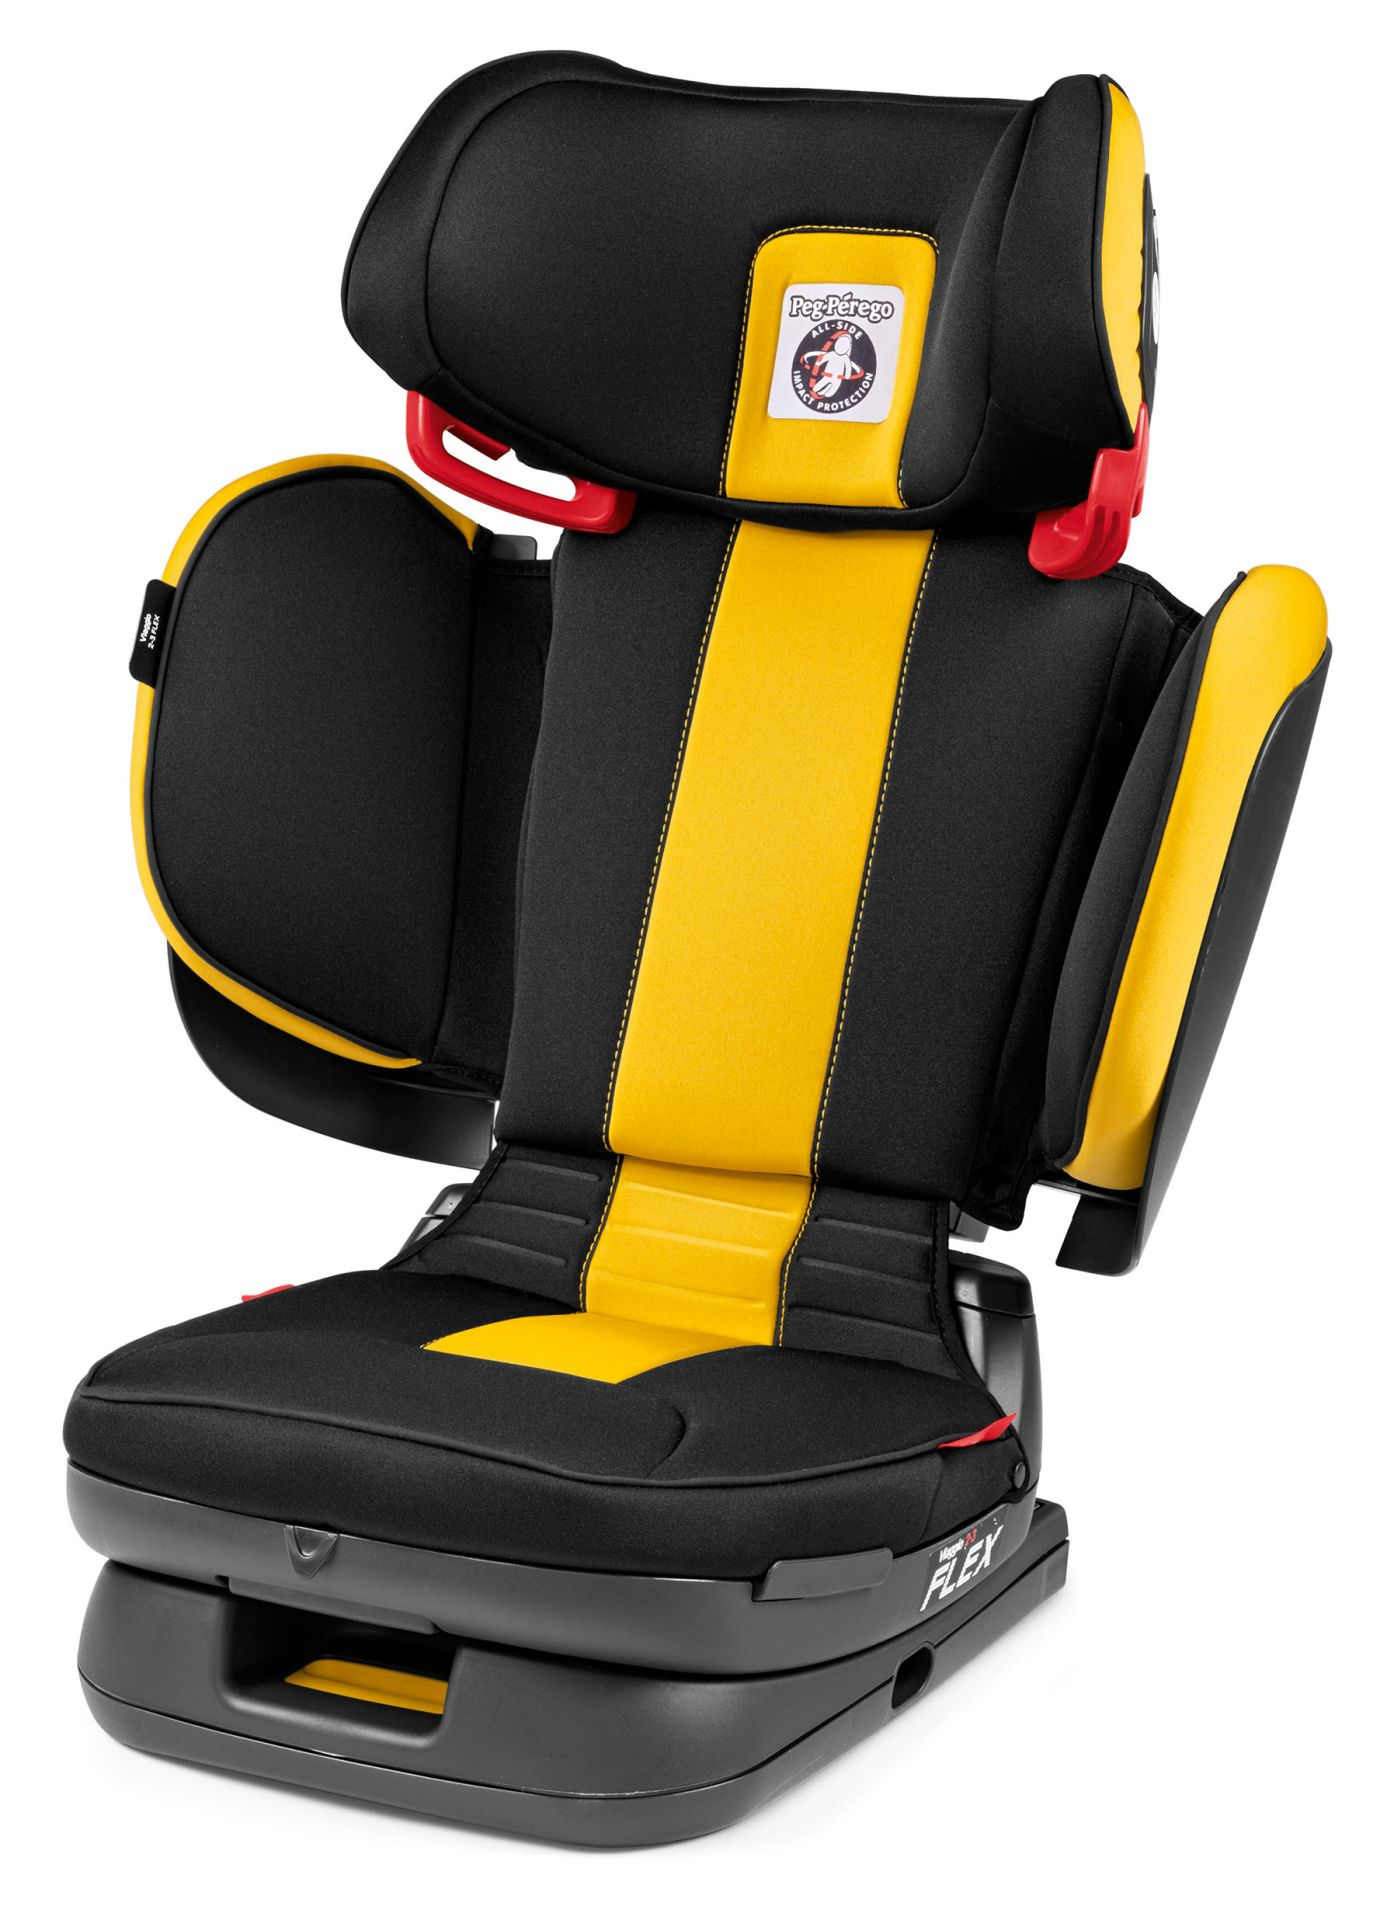 peg perego child car seat viaggio 2 3 flex 2017 daytona buy at kidsroom car seats. Black Bedroom Furniture Sets. Home Design Ideas